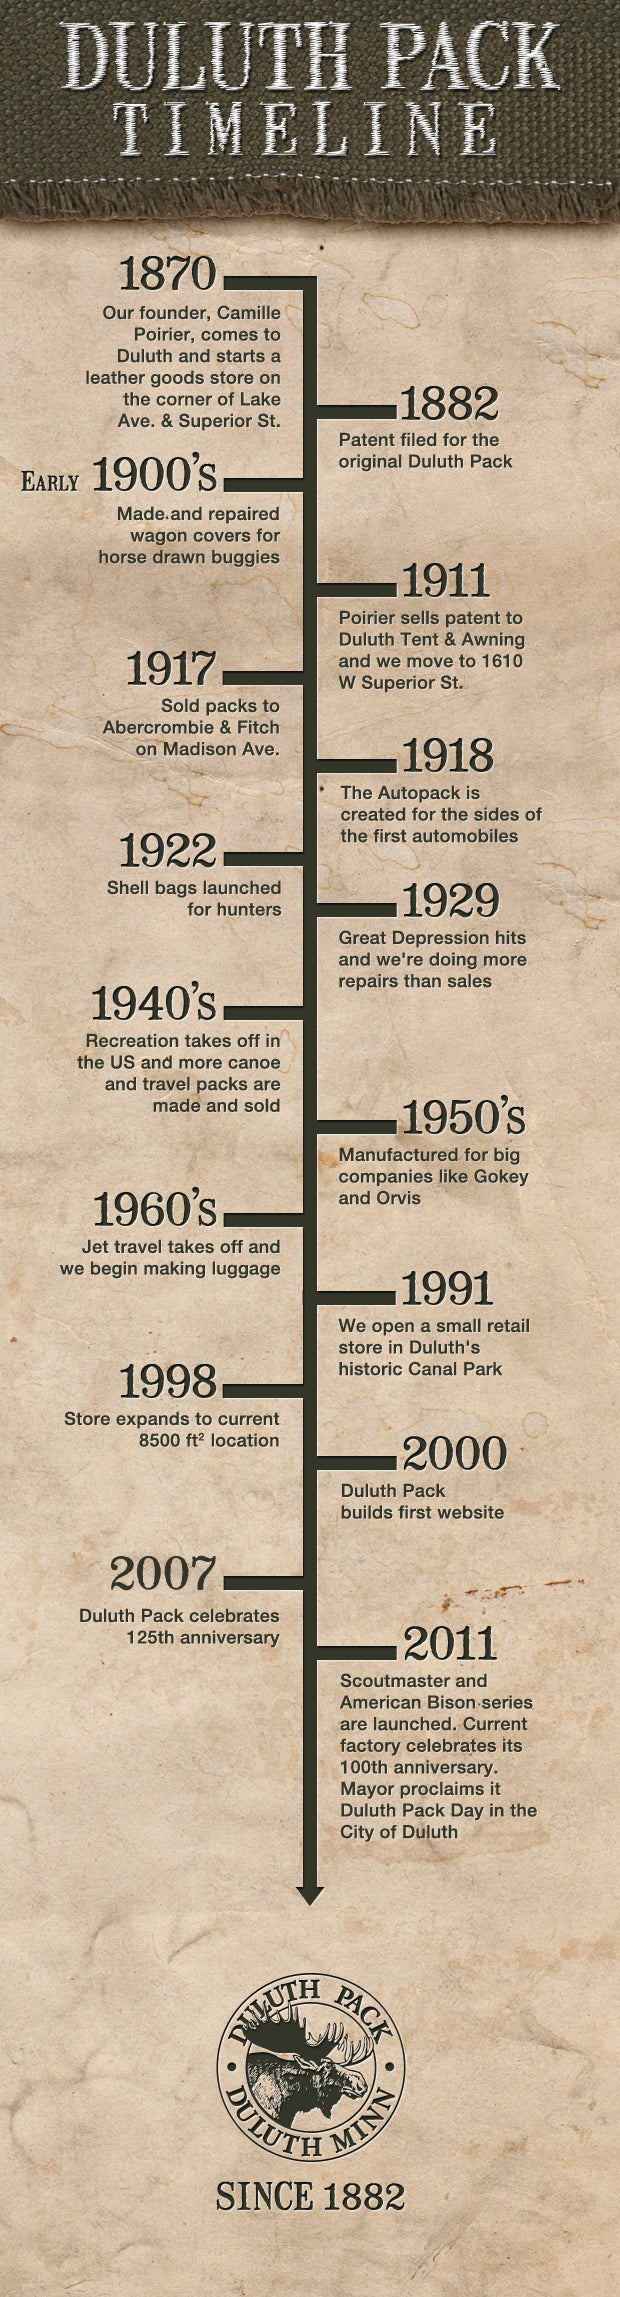 Duluth Pack Company History Timeline